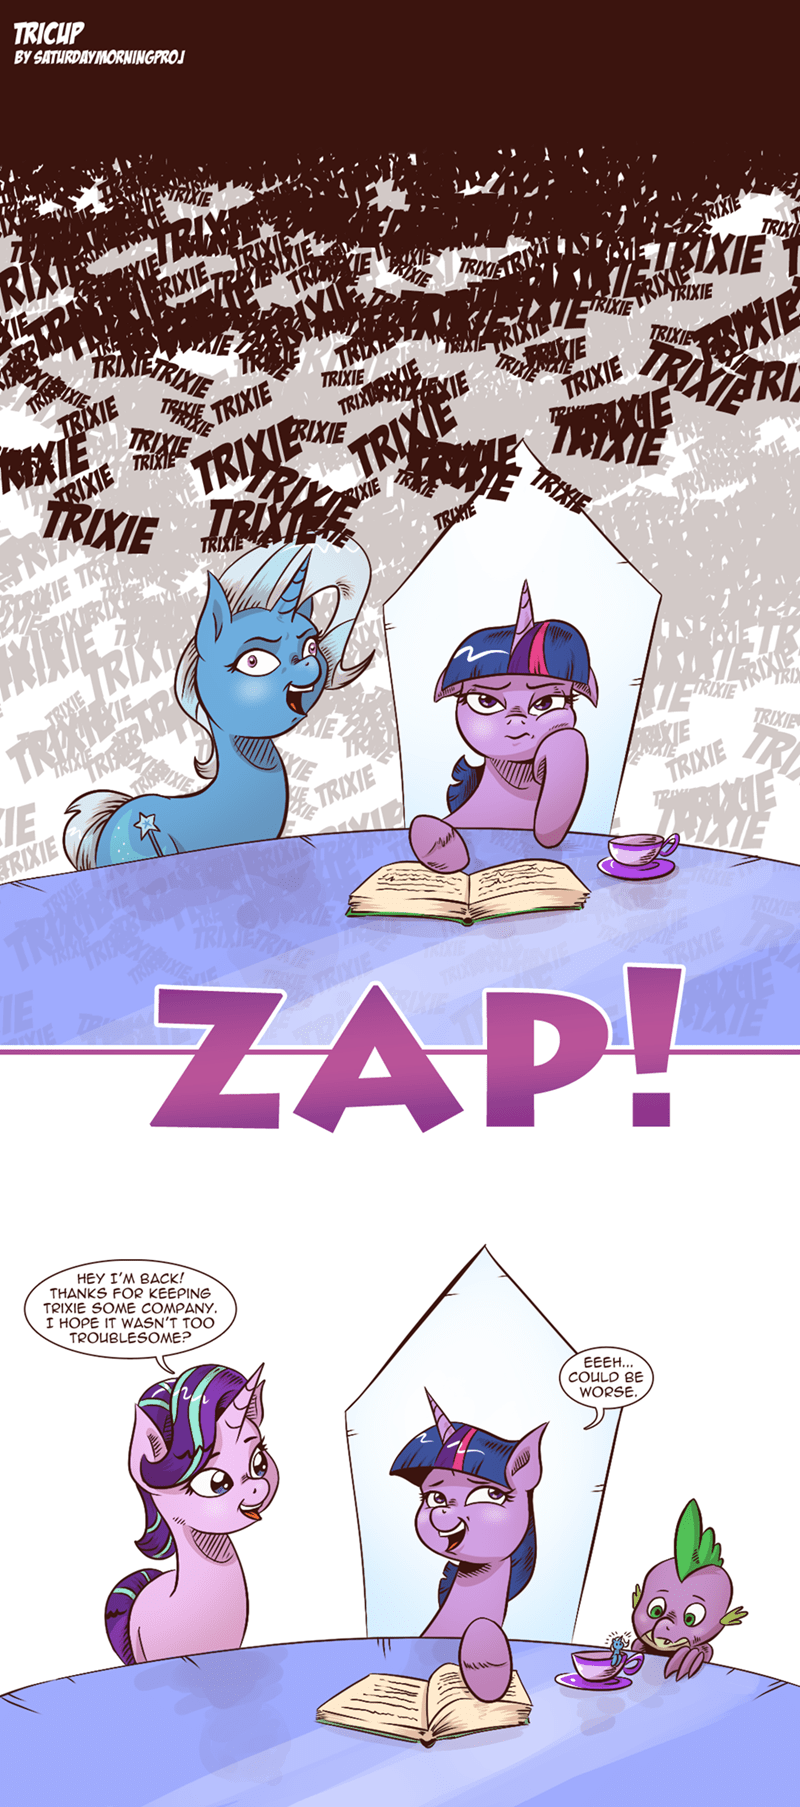 spike the great and powerful trixie starlight glimmer twilight sparkle comic saturdaymorningproj - 9057053952